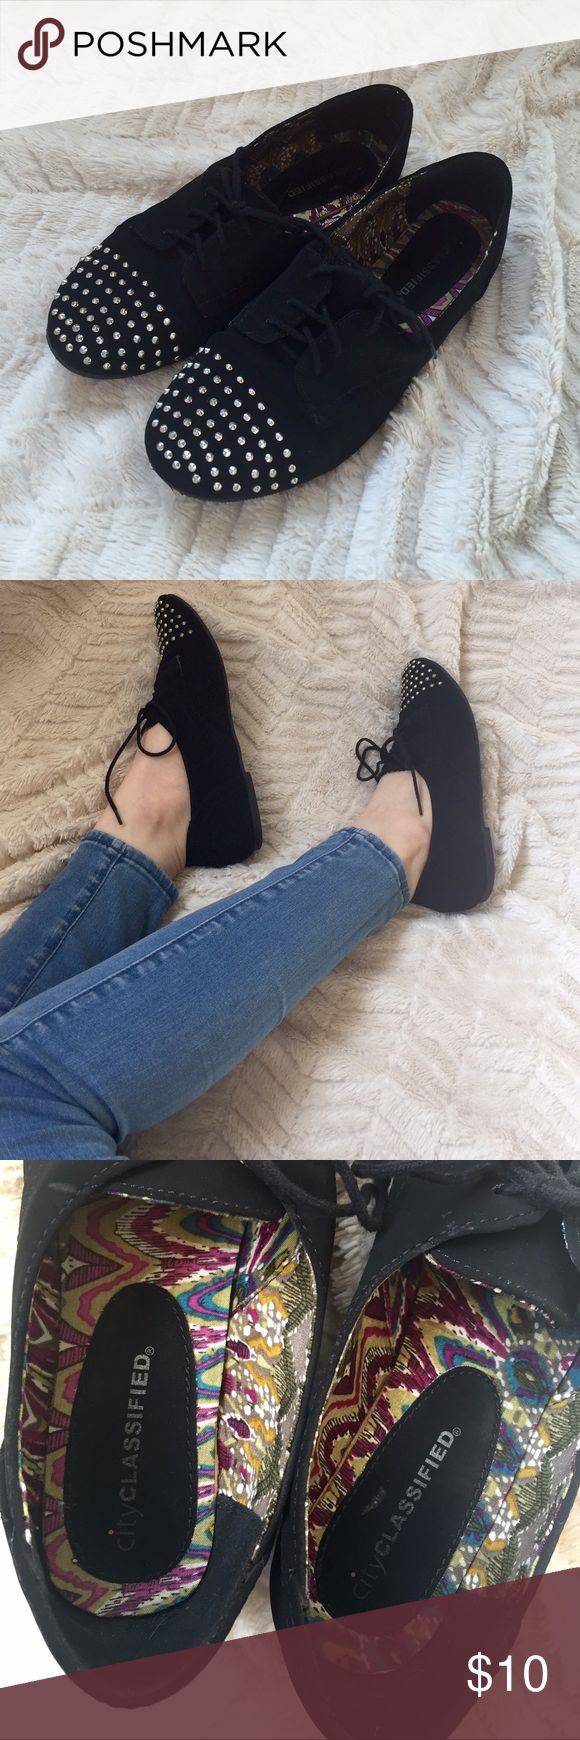 Black Studded Velvety Oxford Flat Lace Up Shoes Worn once • In basically brand new condition • black, velvety material • No studs missing • Pretty patterned fabric inside • Women's size 7 Shoes Flats & Loafers